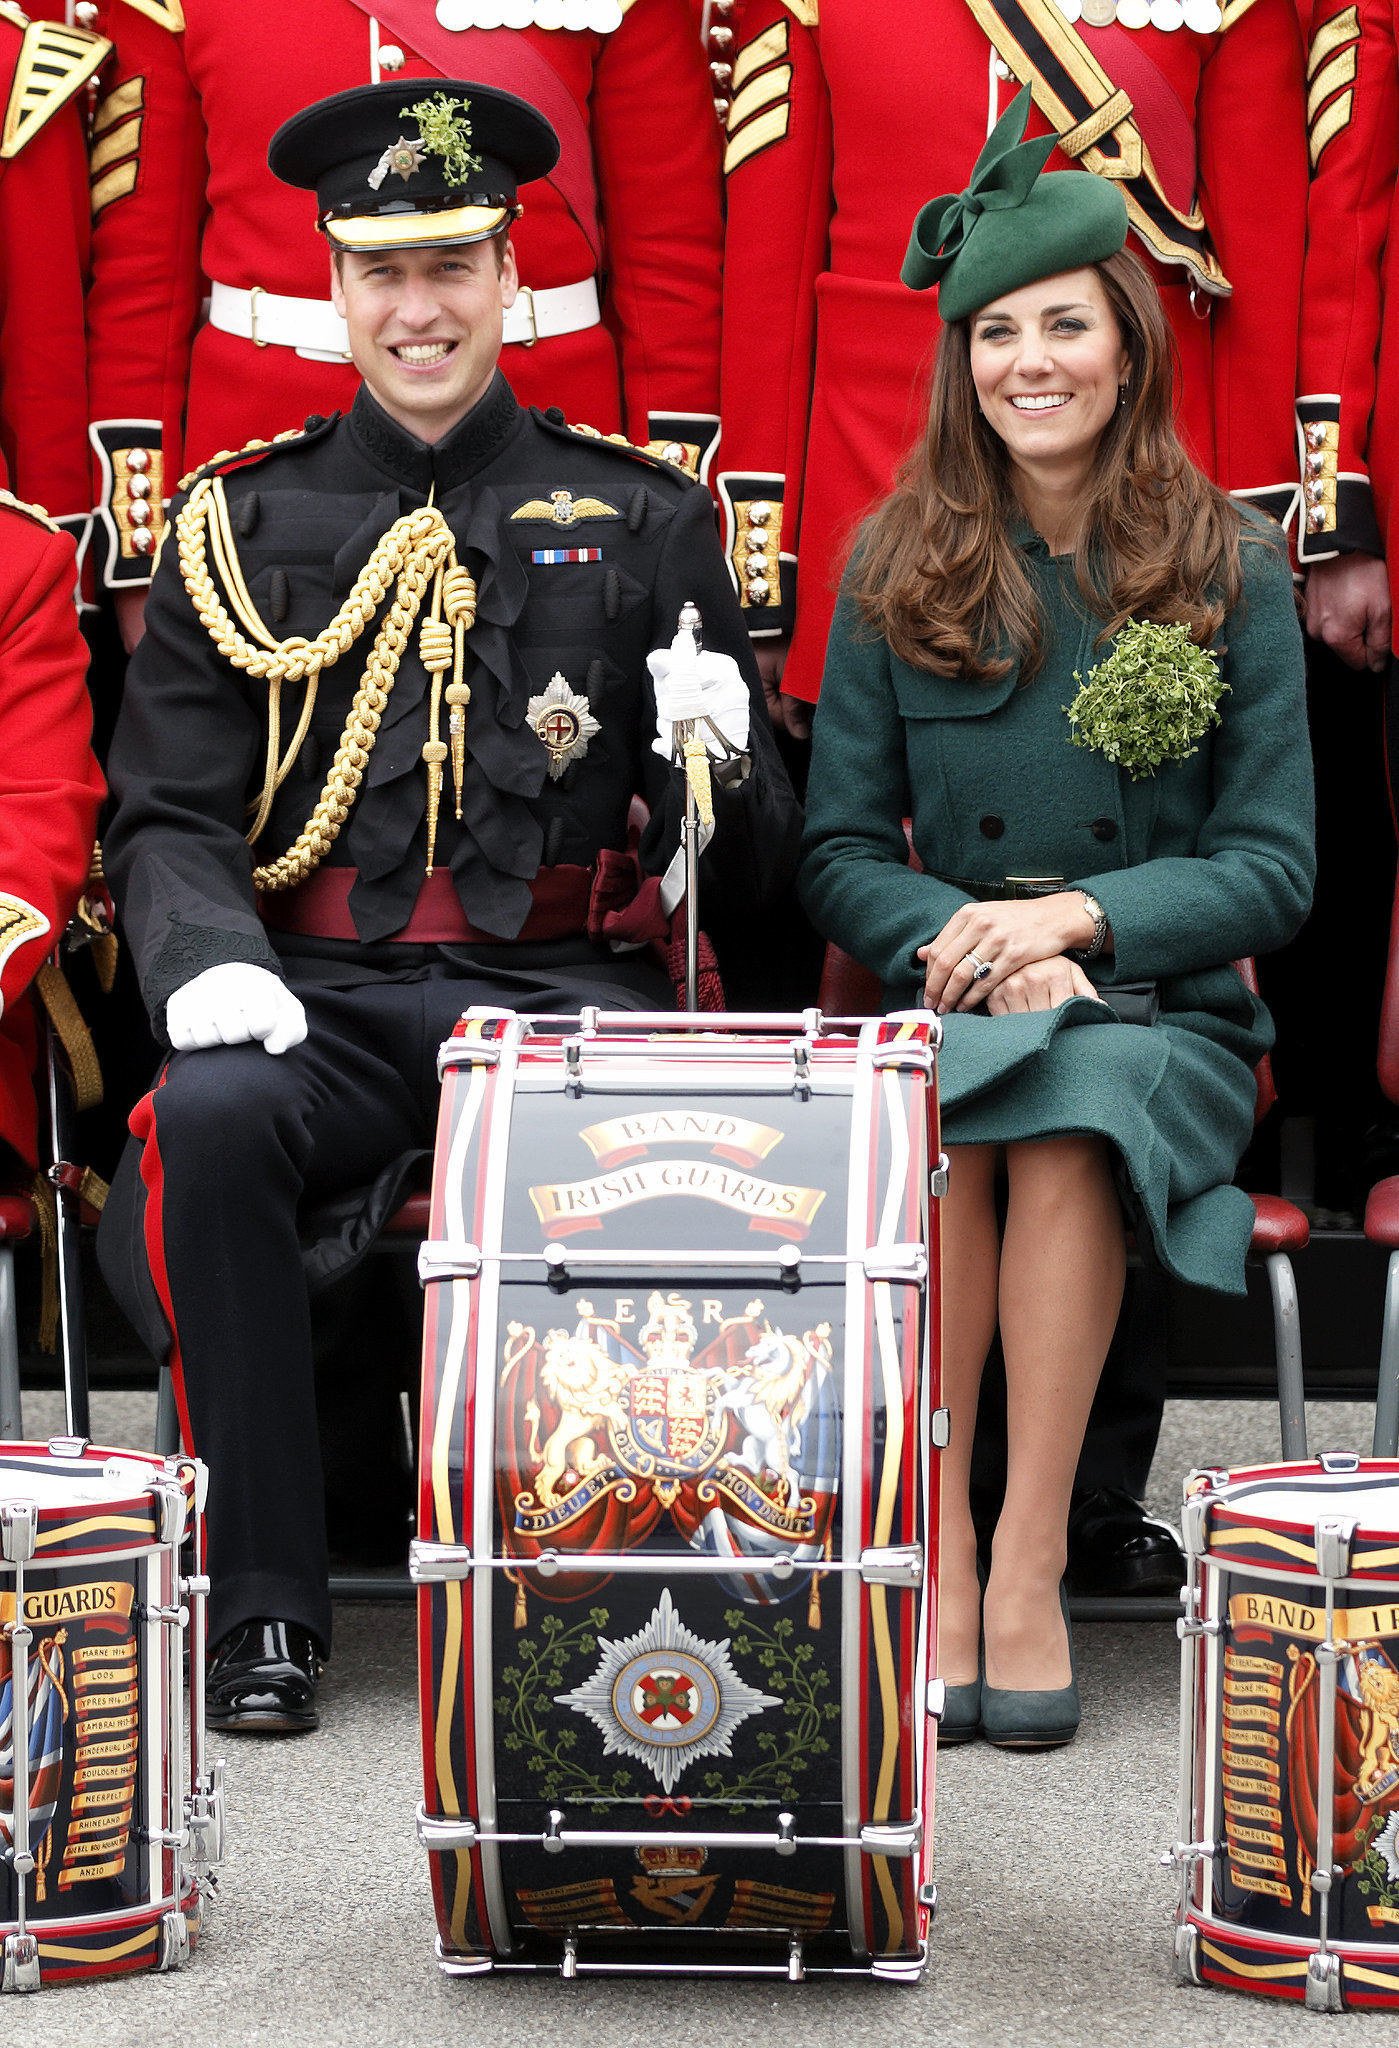 The Duke and Duchess of Cambridge attended the St. Patrick's Day parade in 2014 in Aldershot, England.